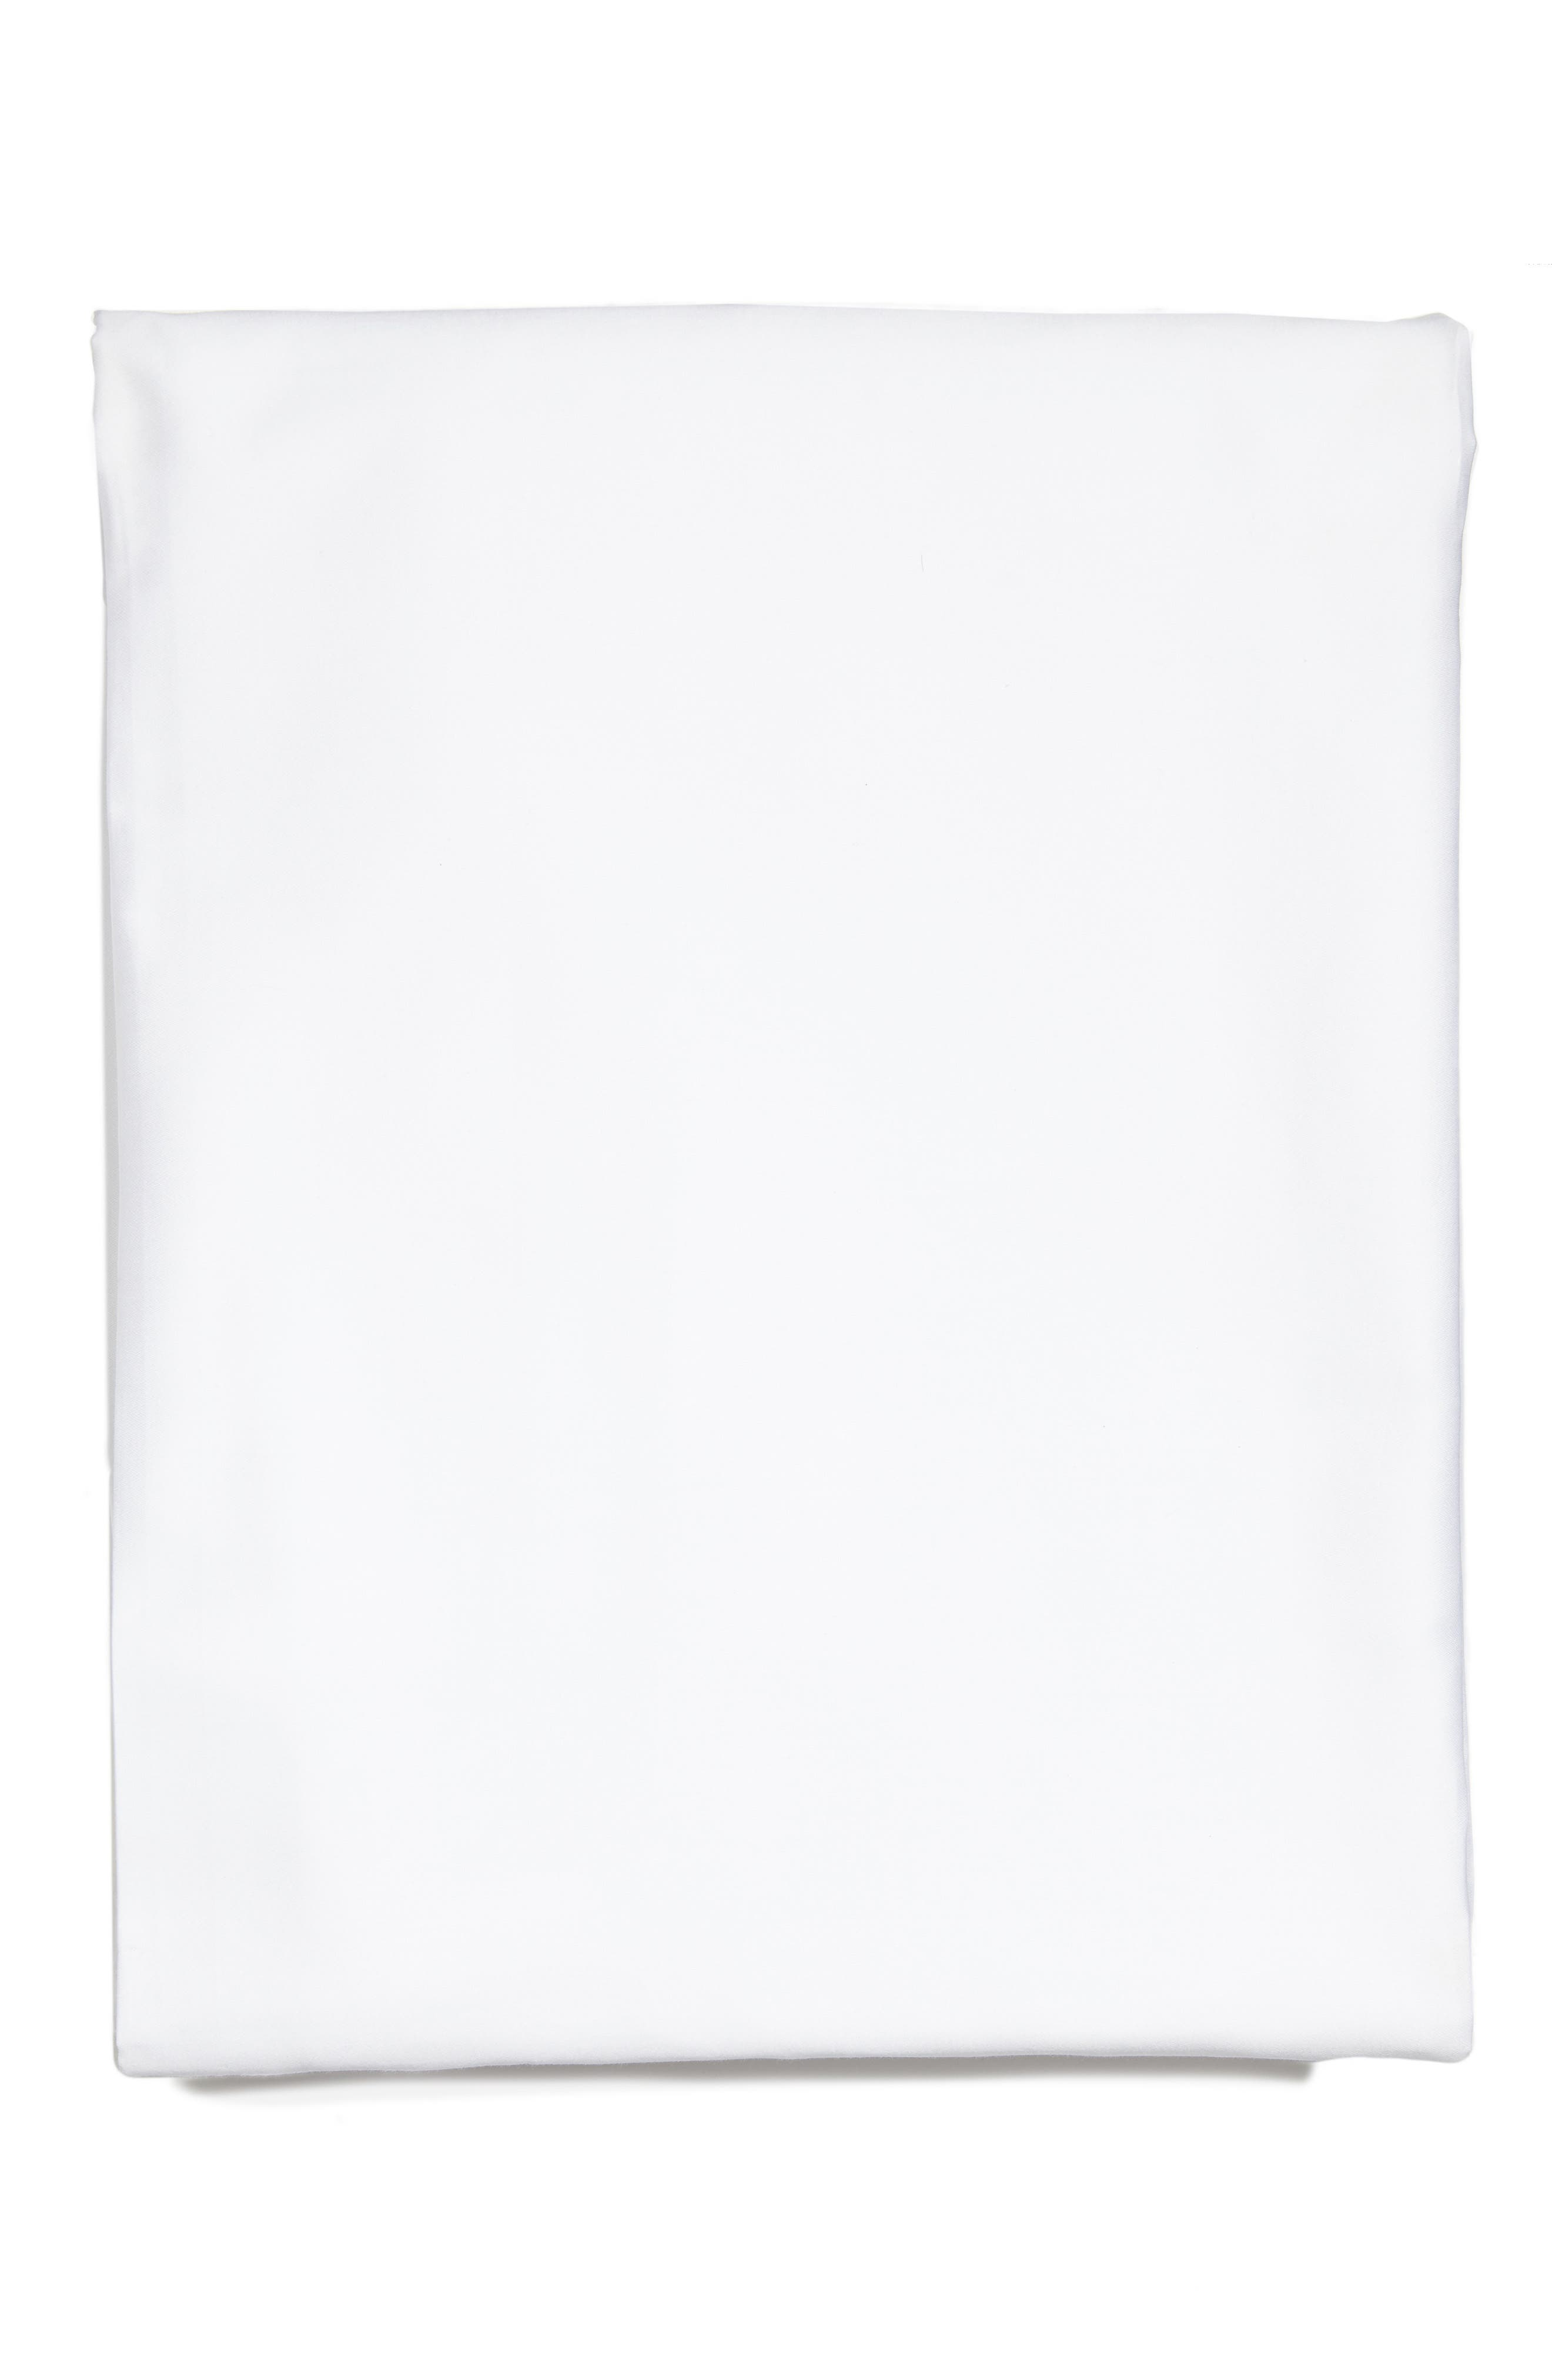 Alternate Image 1 Selected - SFERRA Fiona 300 Thread Count Fitted Sheet